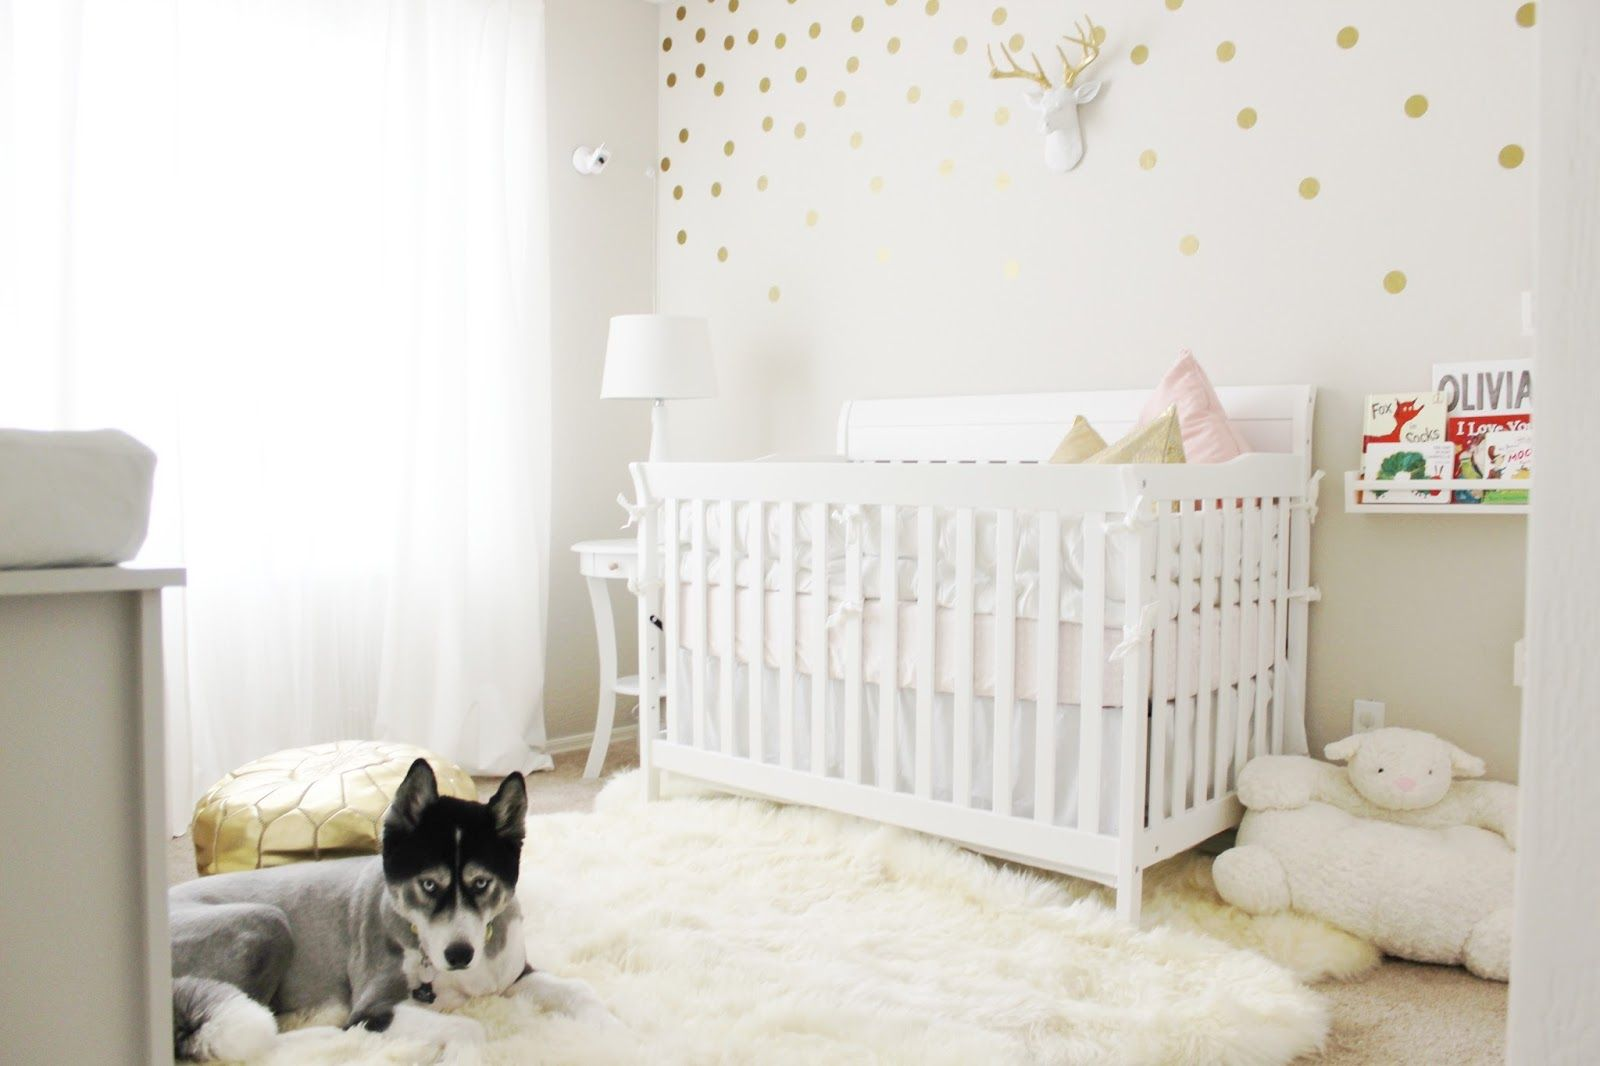 S Our Safavieh Sheepskin Rug Via Aubrey Kinch  BLOG Nursery Reveal